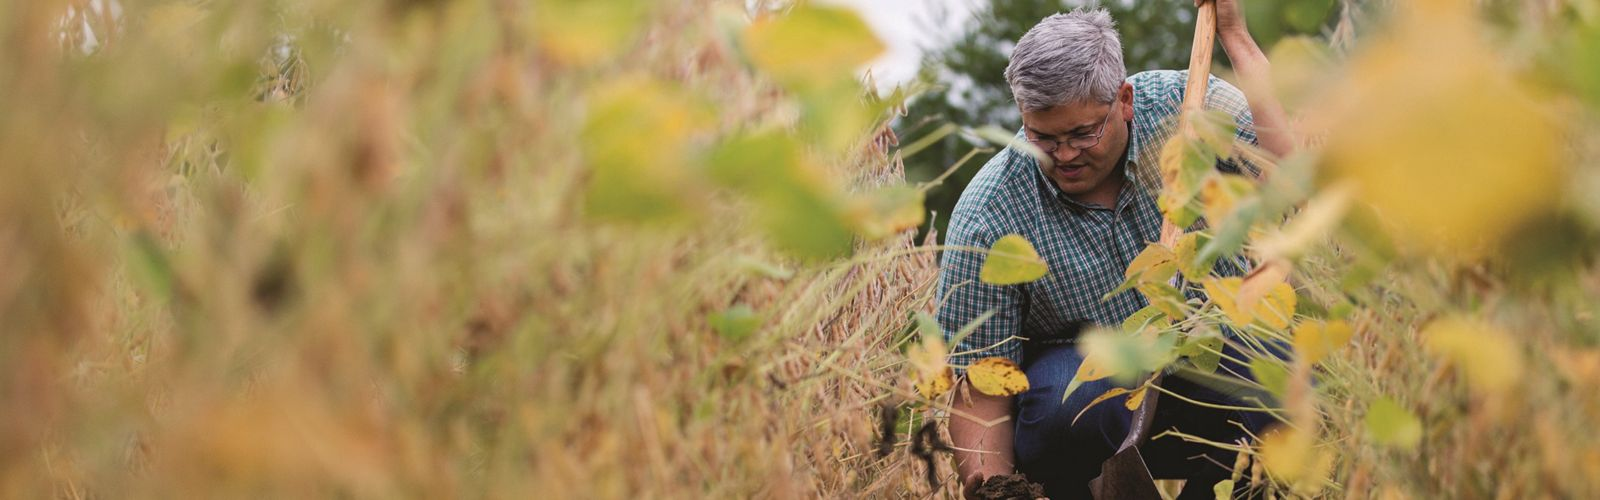 A man kneels in a agriculture plot to tend to his crops